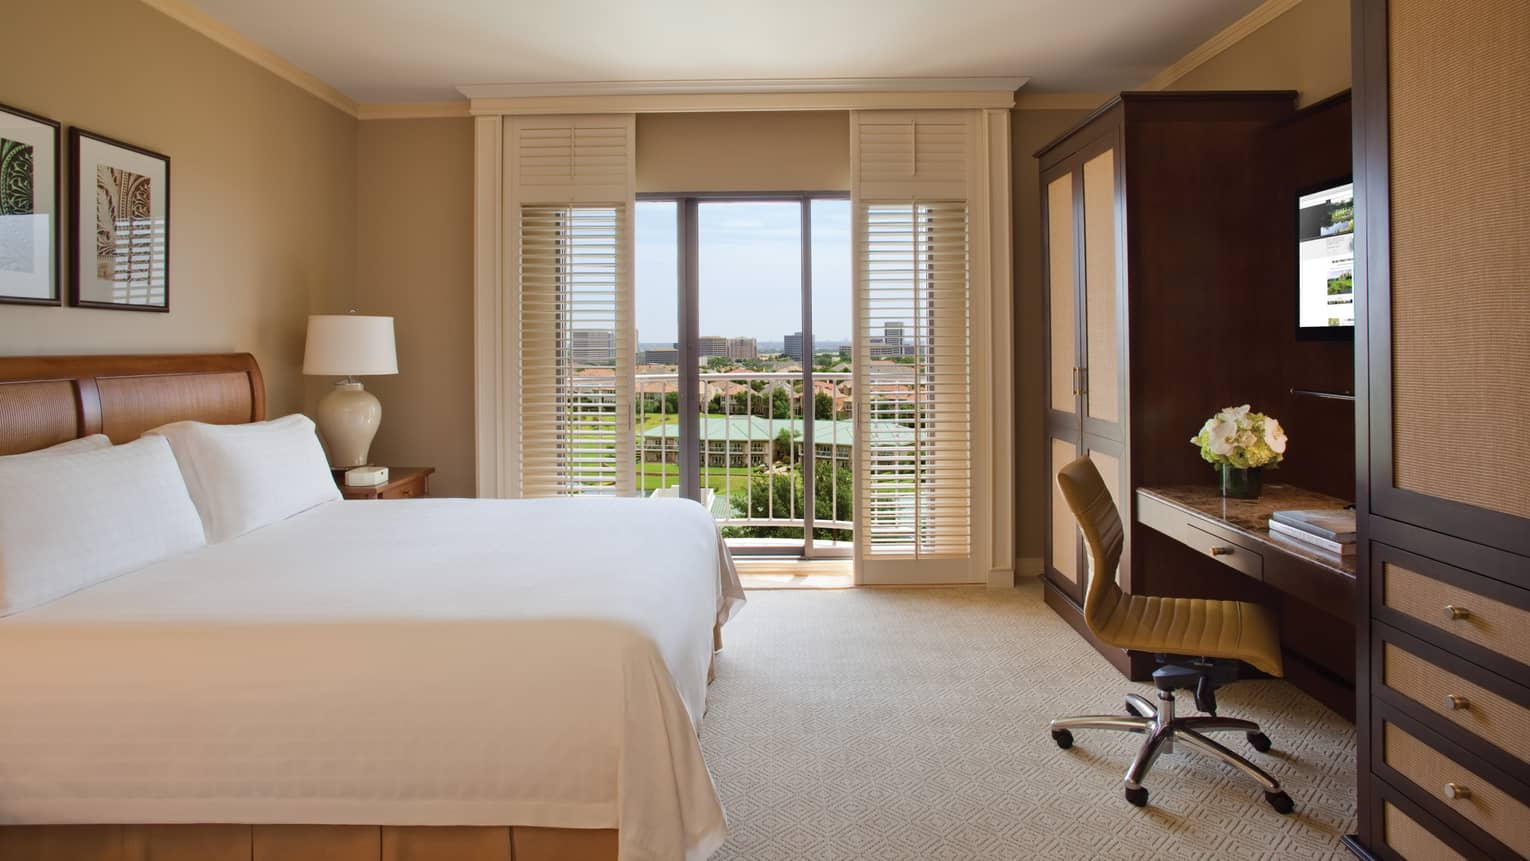 Premier Tower Golf-View Room bed across from desk, chair, white shutters opening to balcony